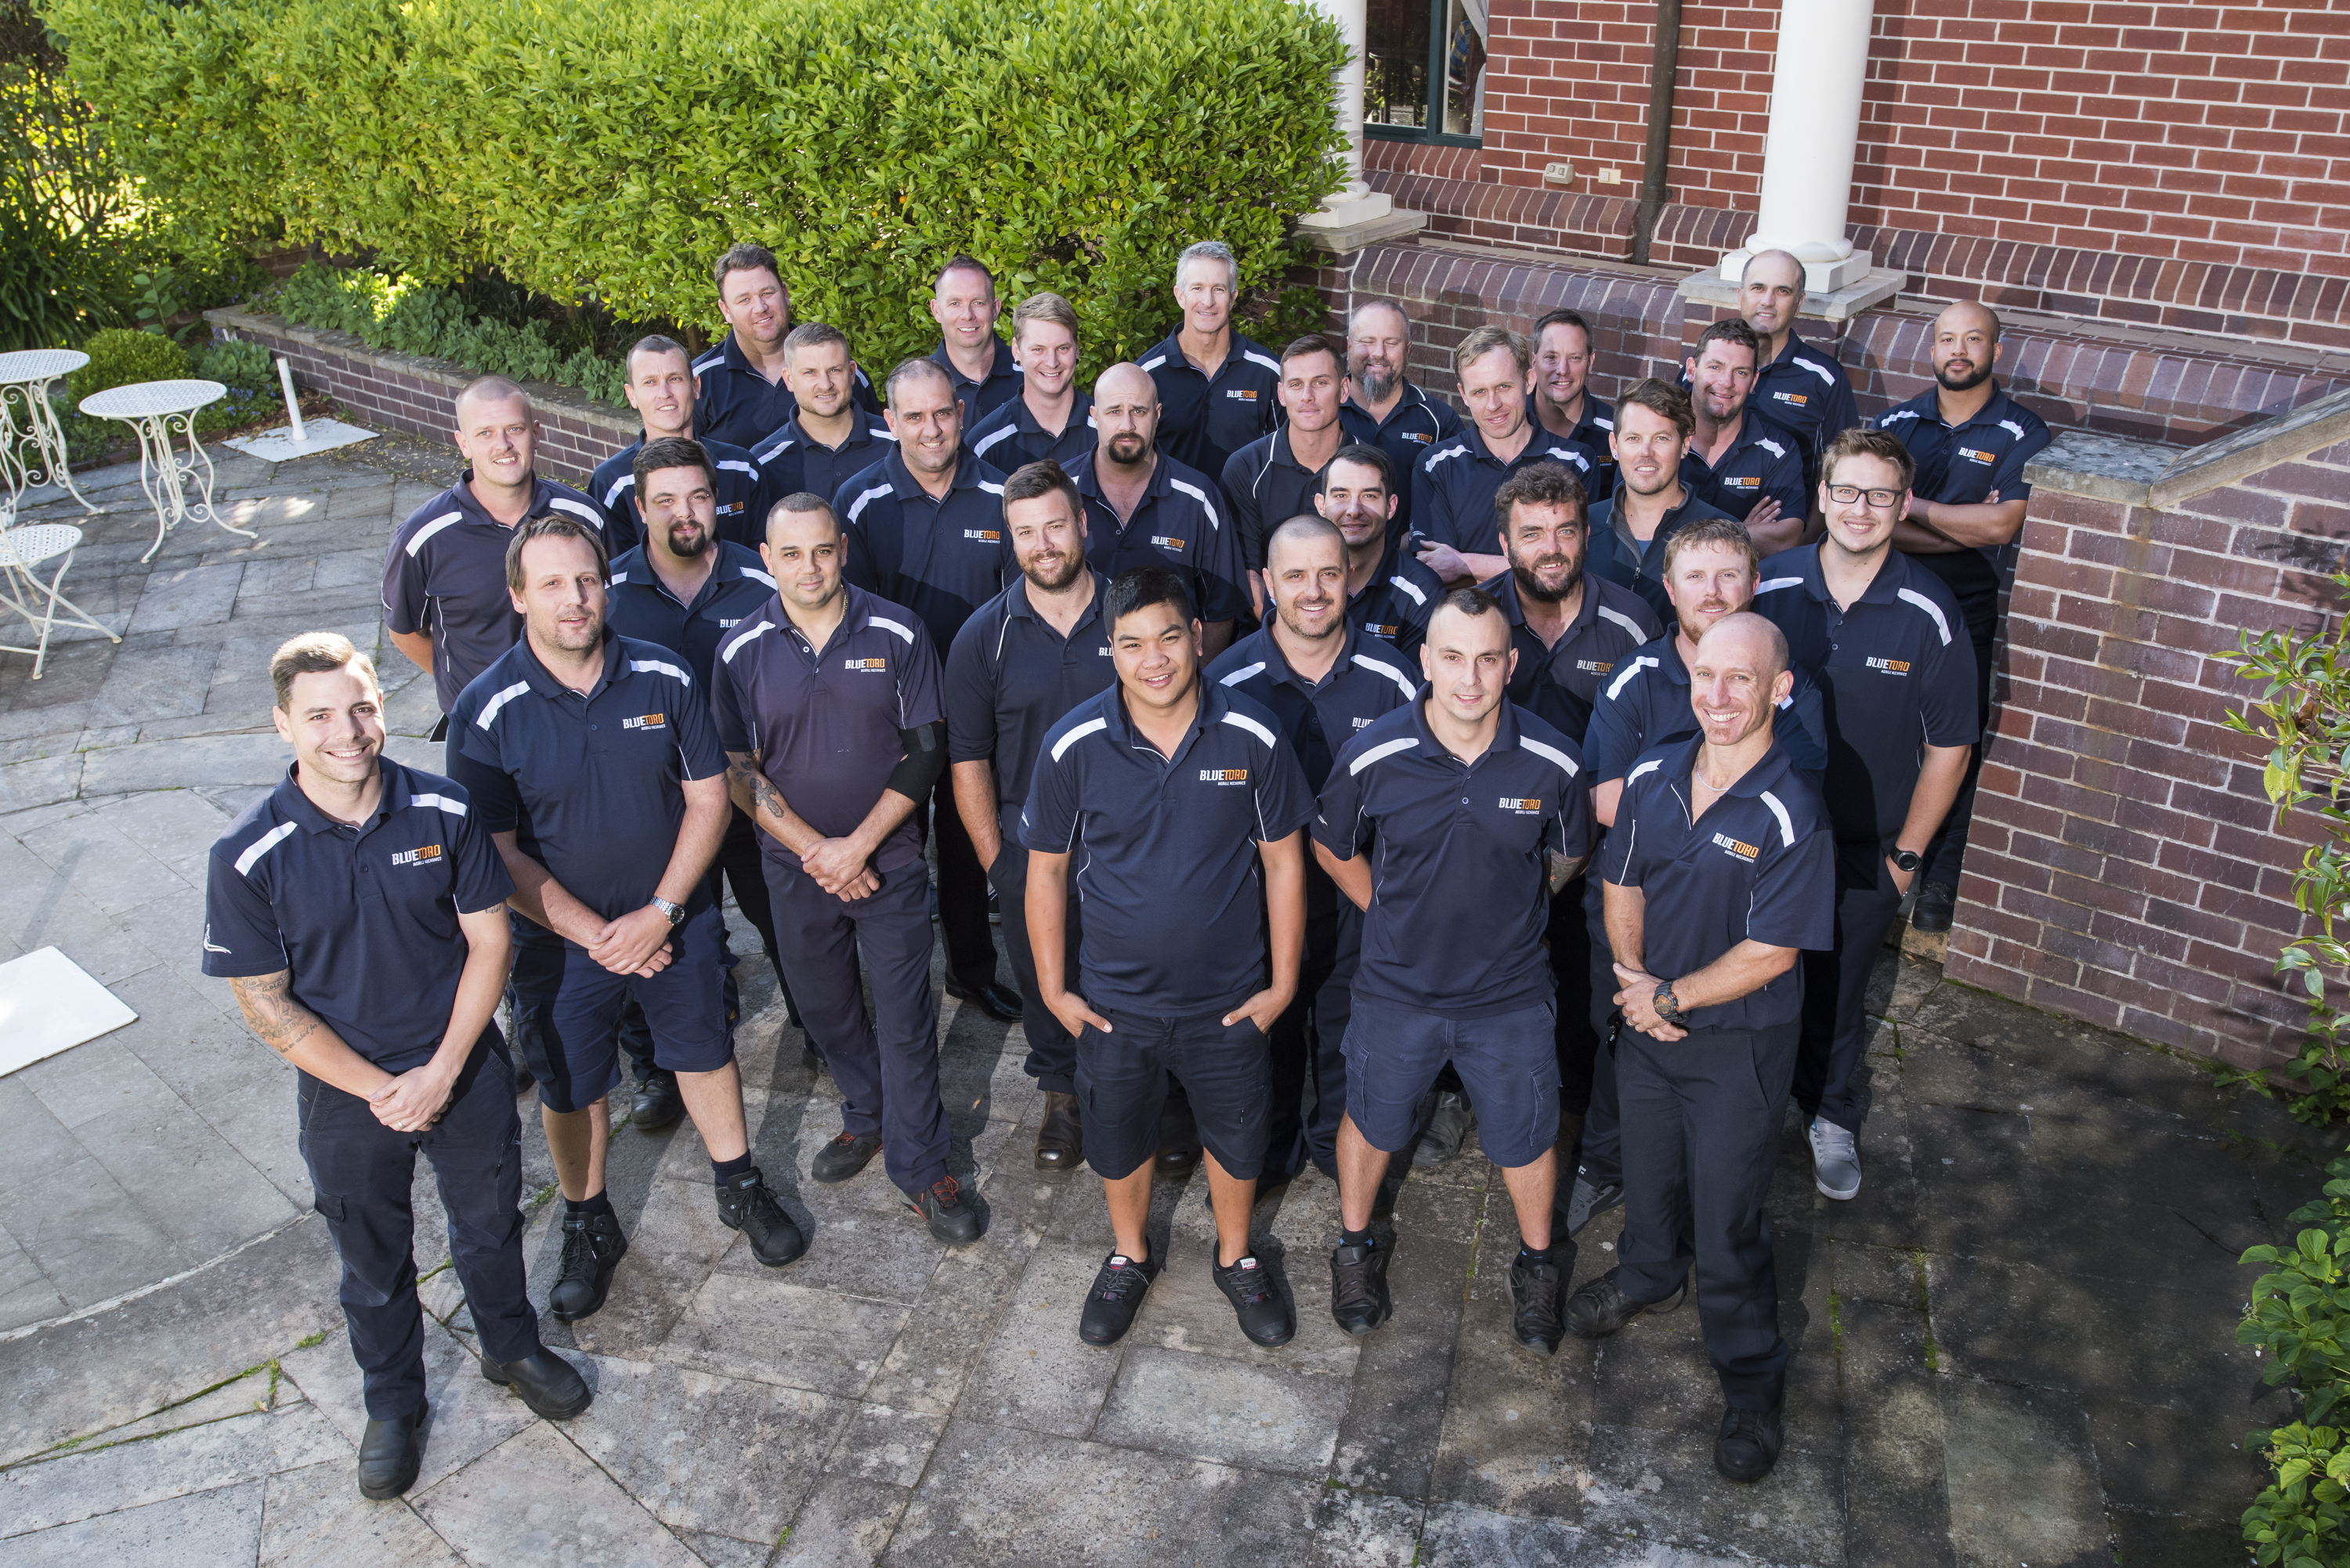 Perth Mechanic Business for sale, earn $240,000+ | Automotive Franchise